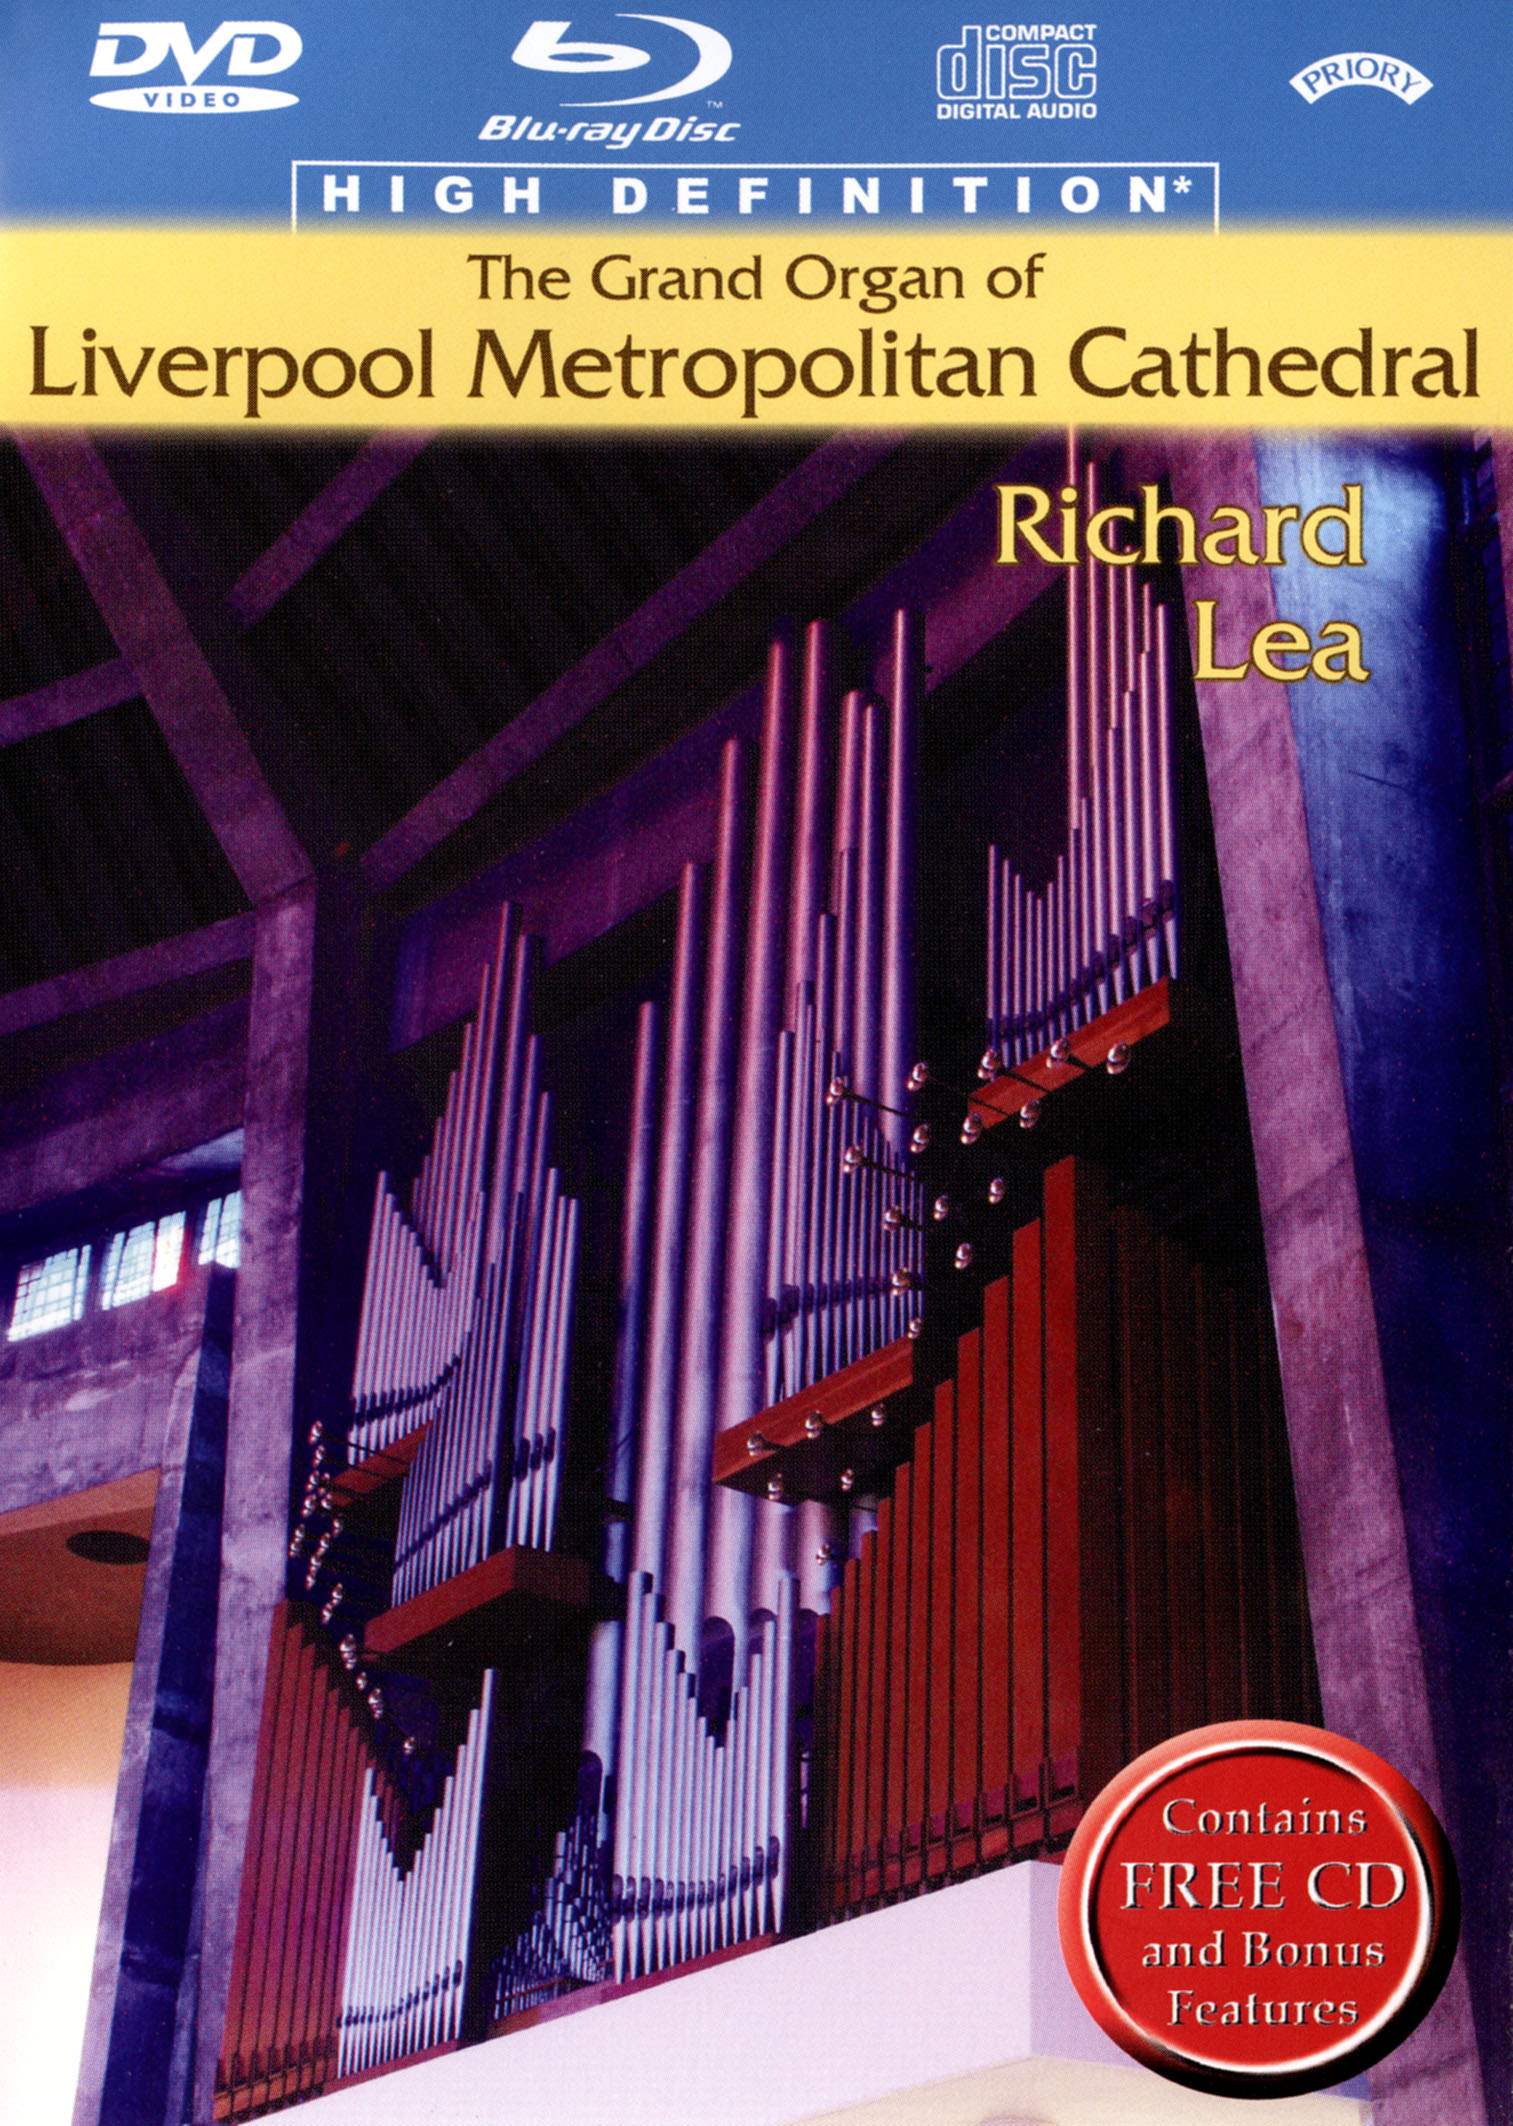 The Grand Organ of Liverpool Metropolitan Cathedral